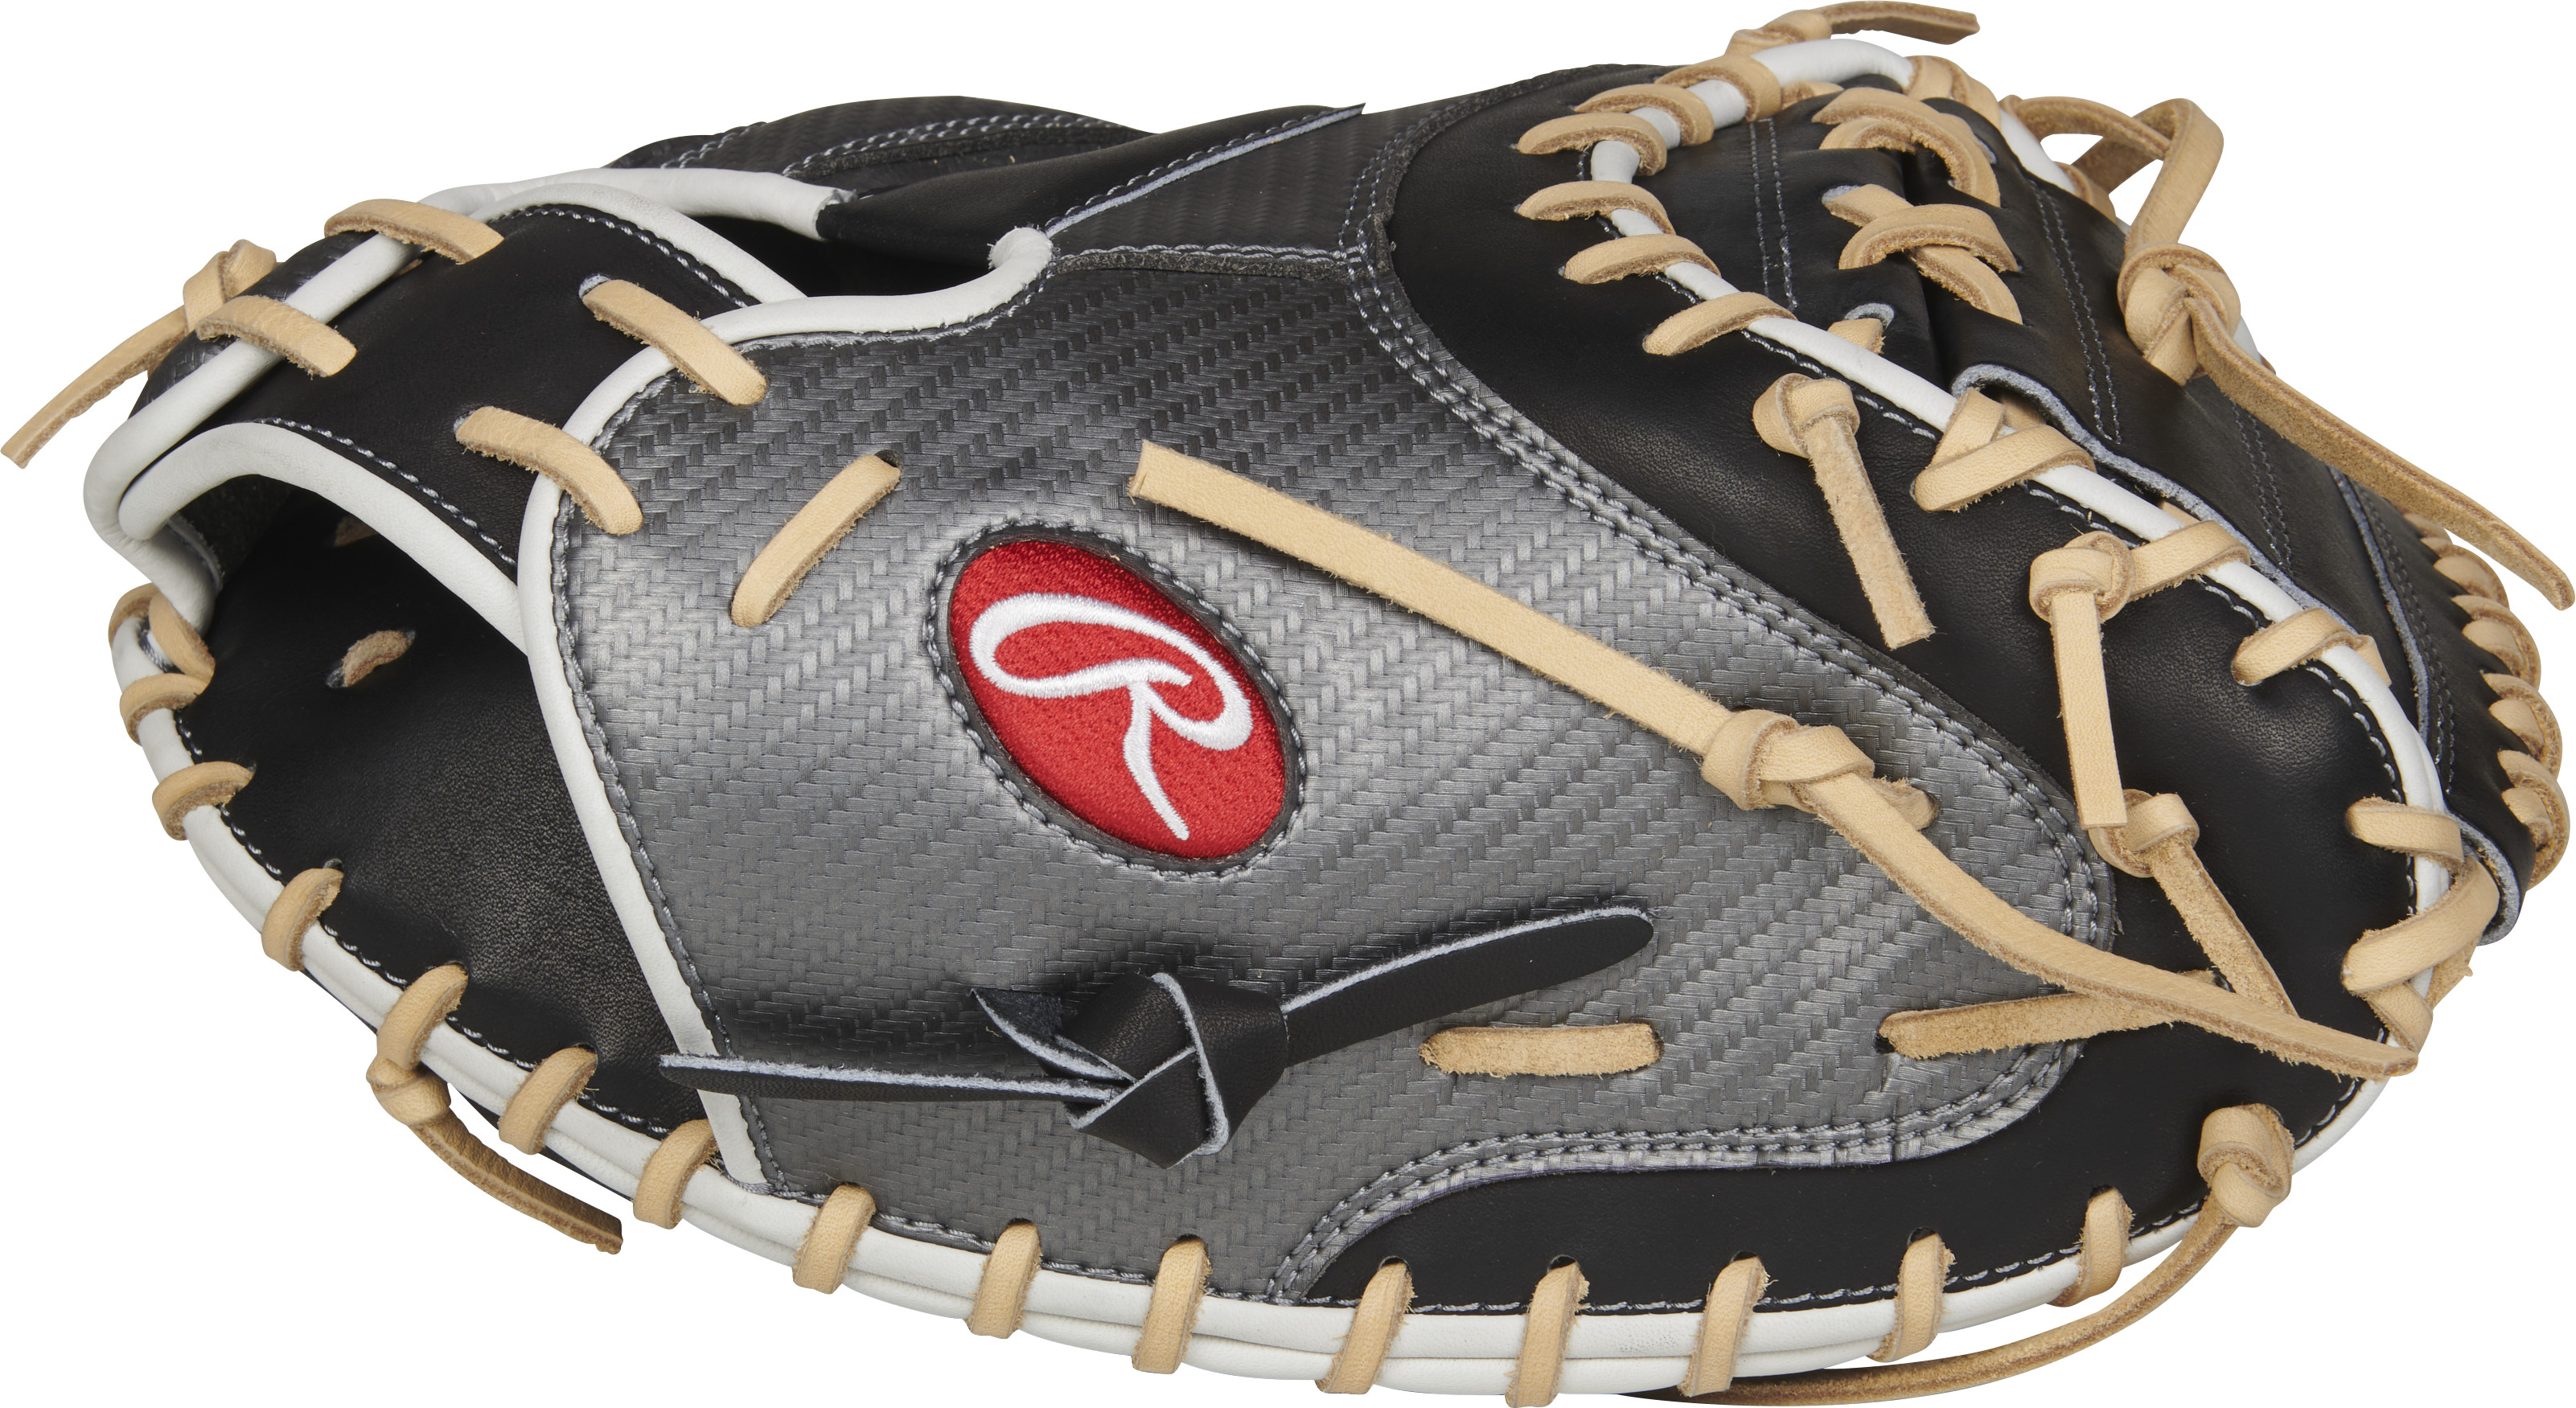 http://www.bestbatdeals.com/images/gloves/rawlings/PROCM41BCF-3.jpg